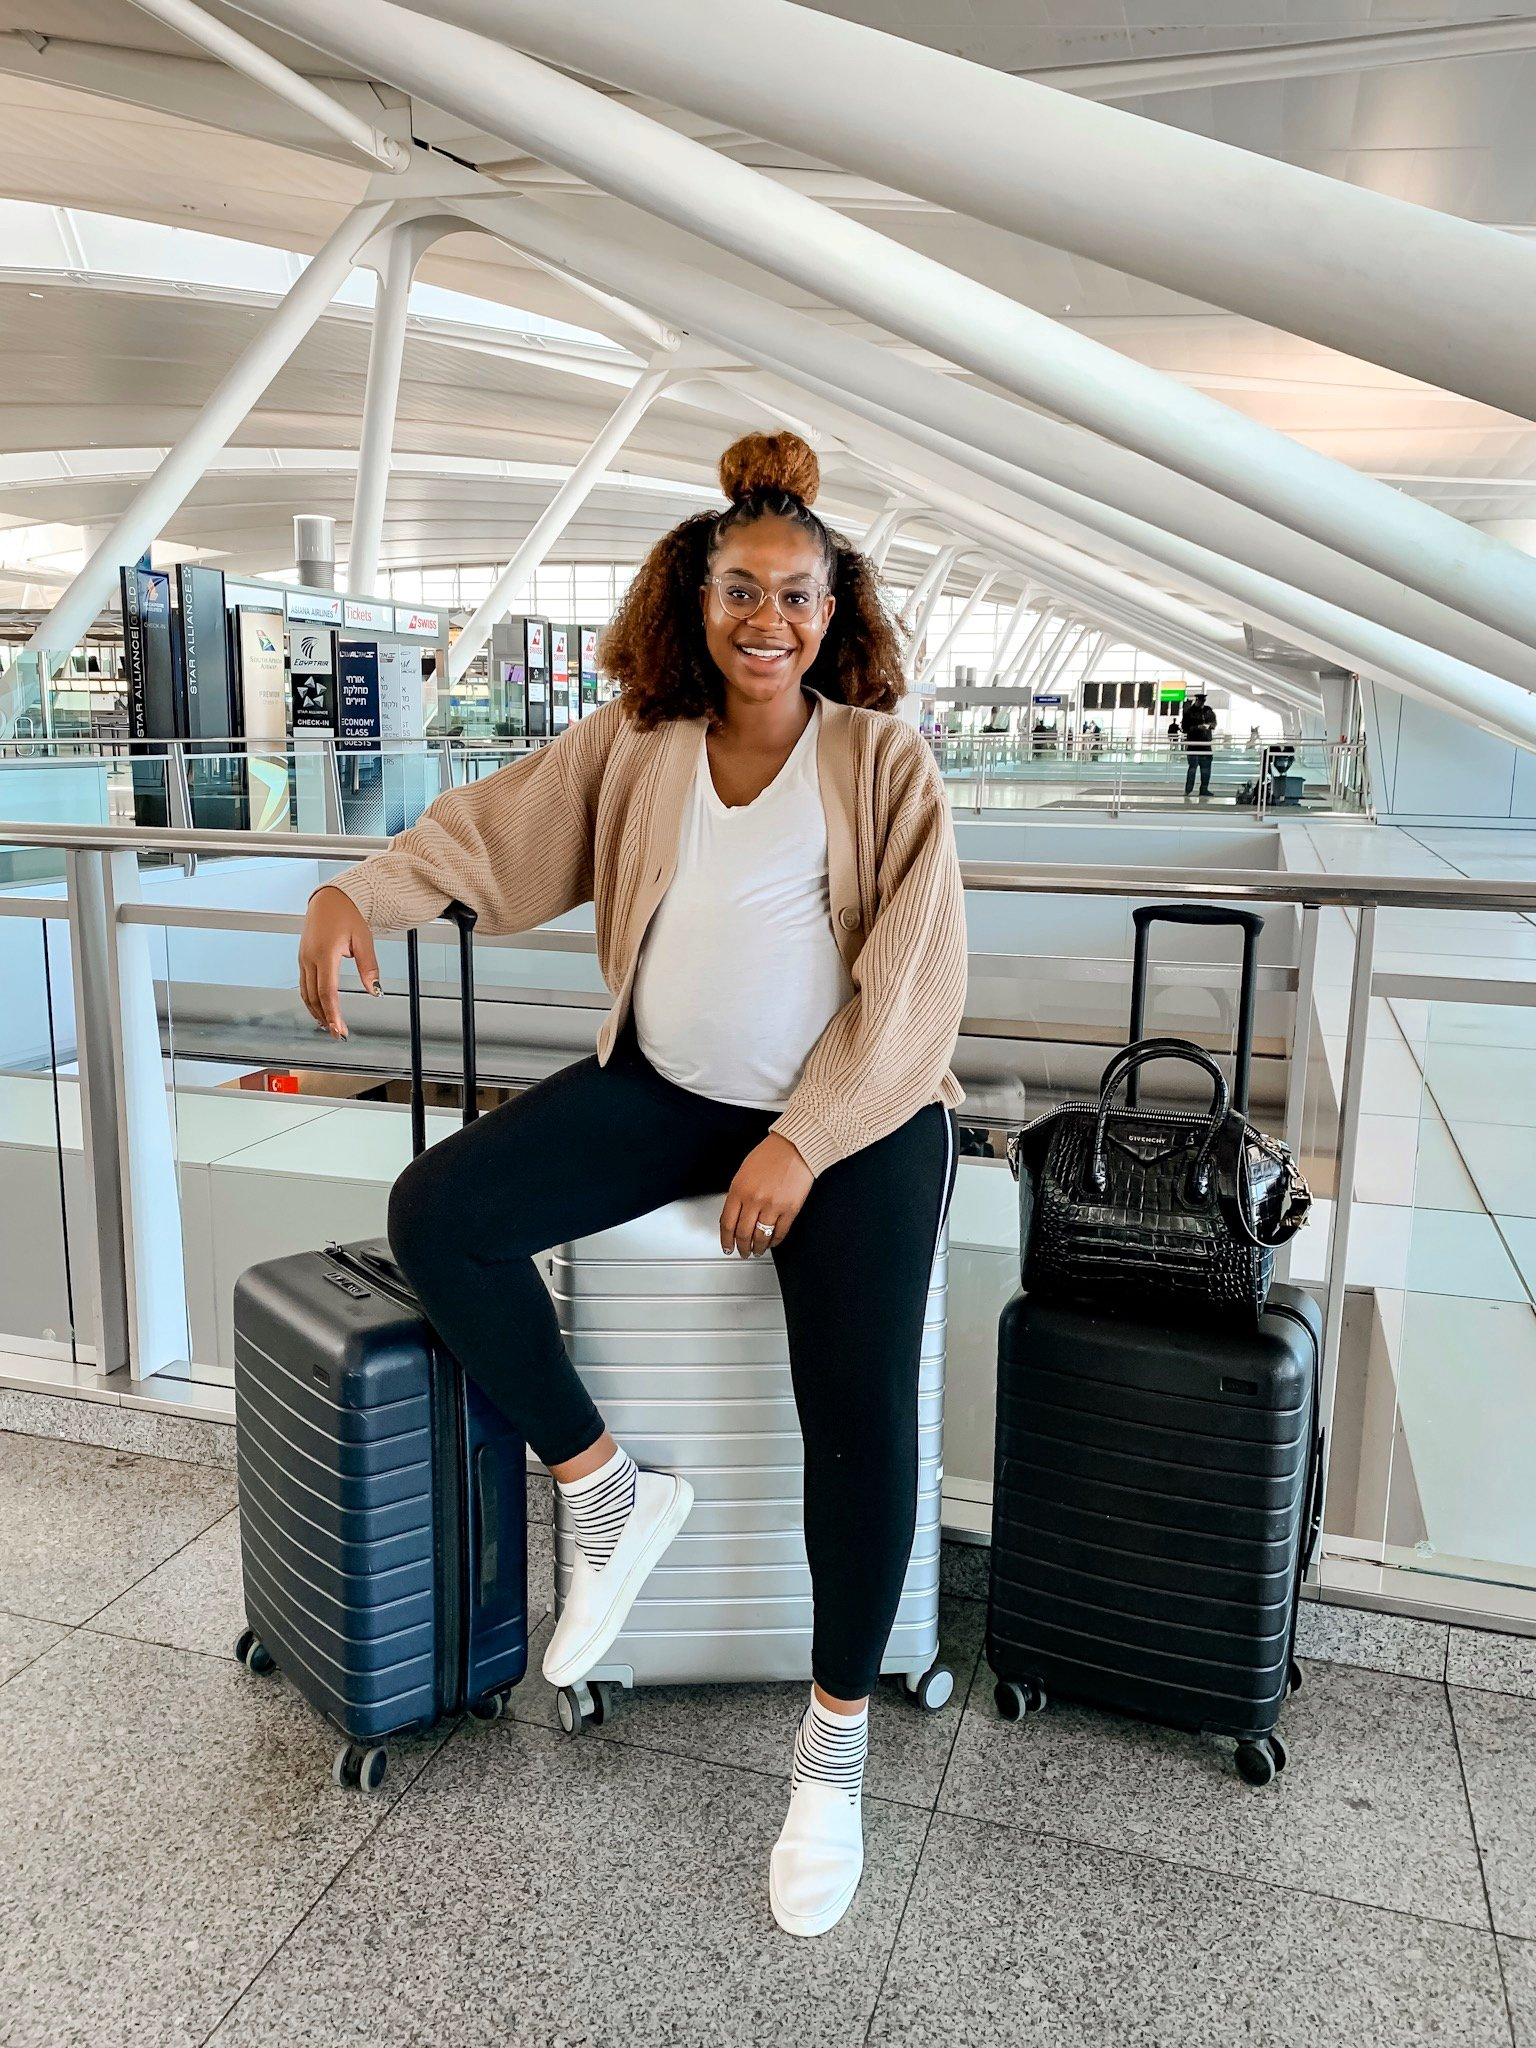 Ijeoma Kola at airport with luggage. Travel safely for the holidays.